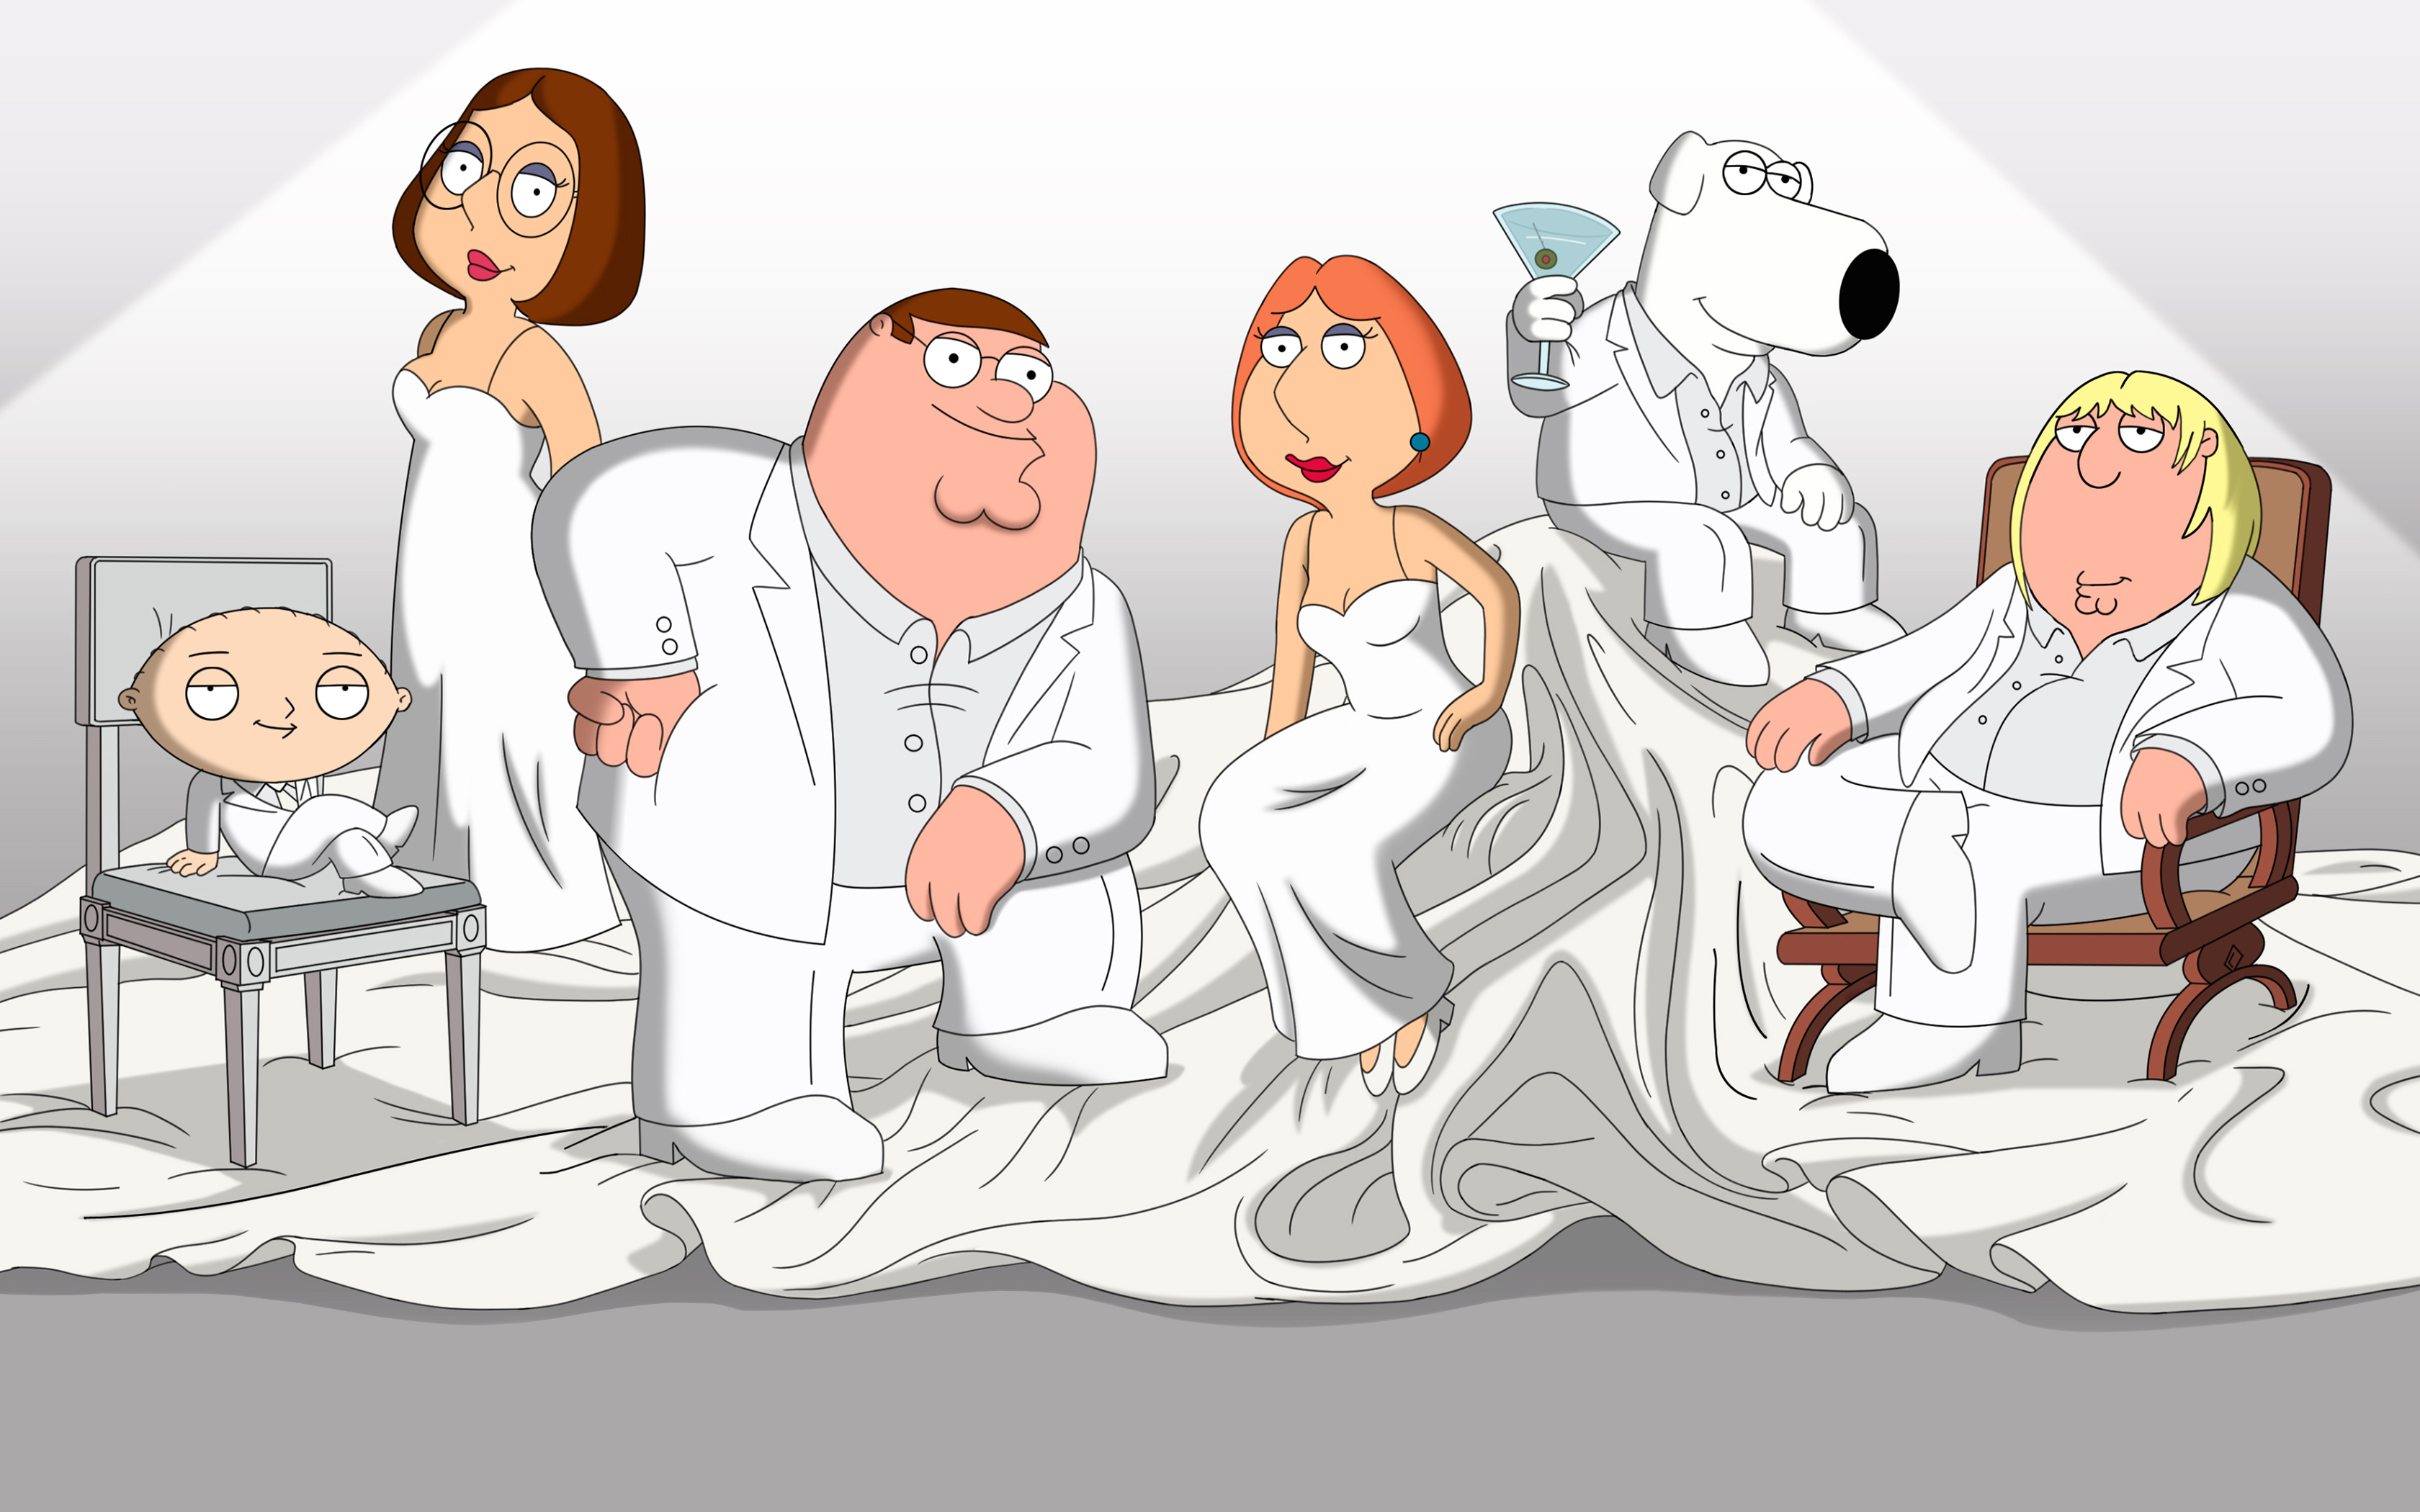 1280x1024 Family Guy 1280x1024 Resolution Hd 4k Wallpapers